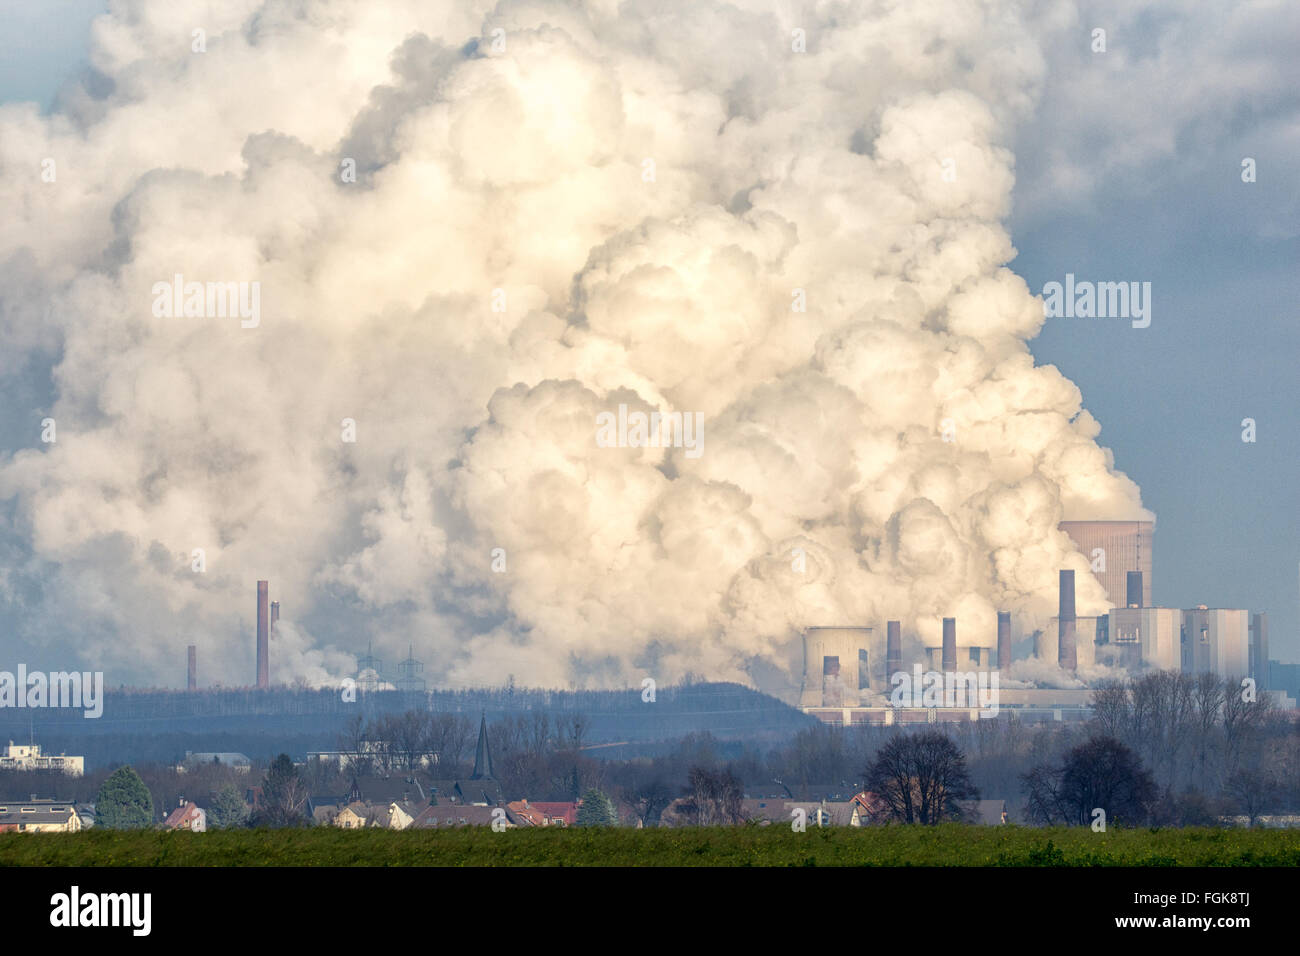 Brown coal power plant emission. - Stock Image